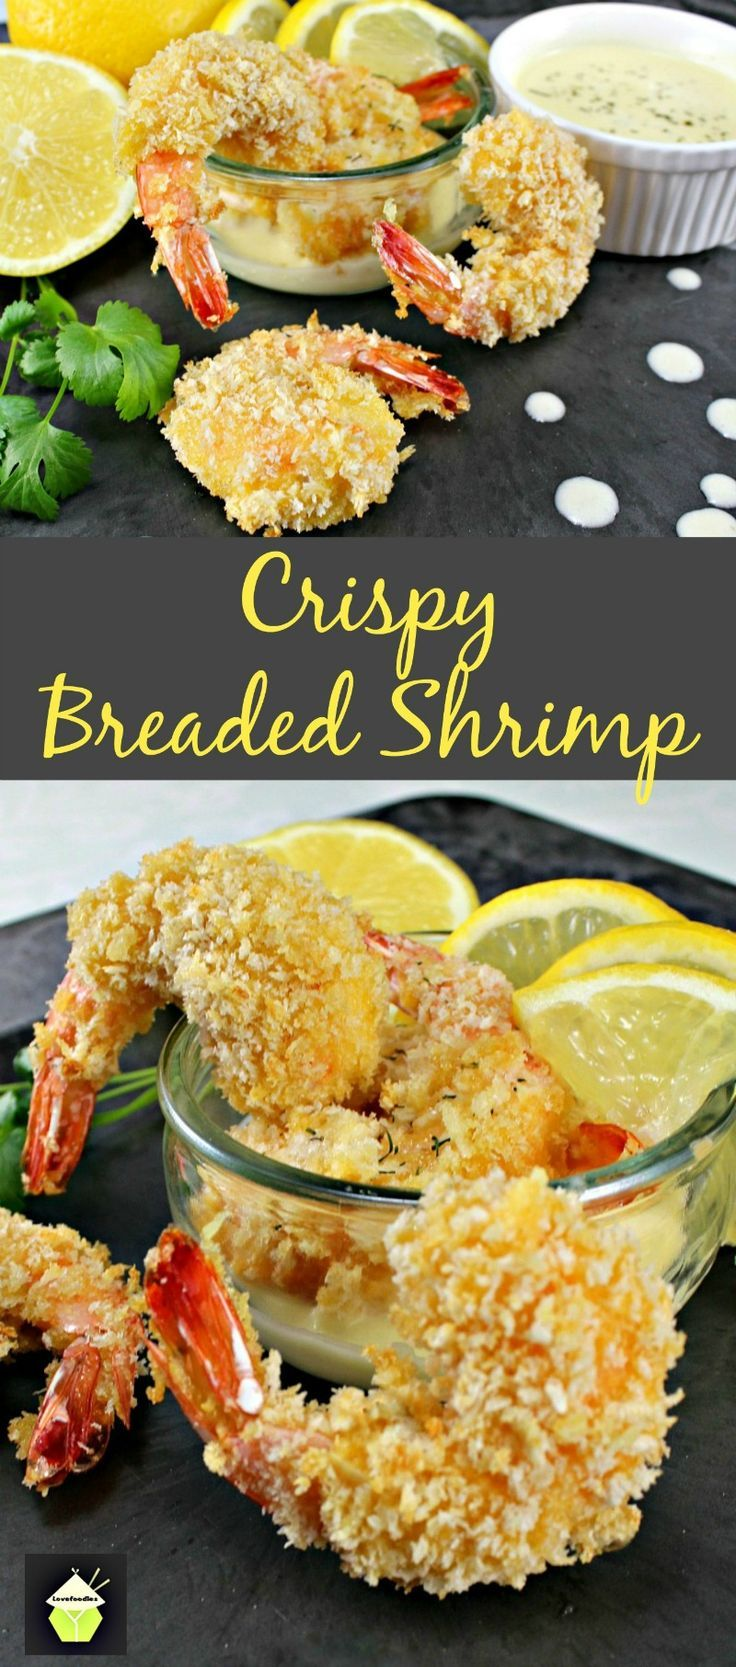 Crispy Breaded Shrimp. An incredible easy and quick recipe, serve as a starter or as party food. Oh so good! No frying either!  #shrimp #breaded #baked #prawns